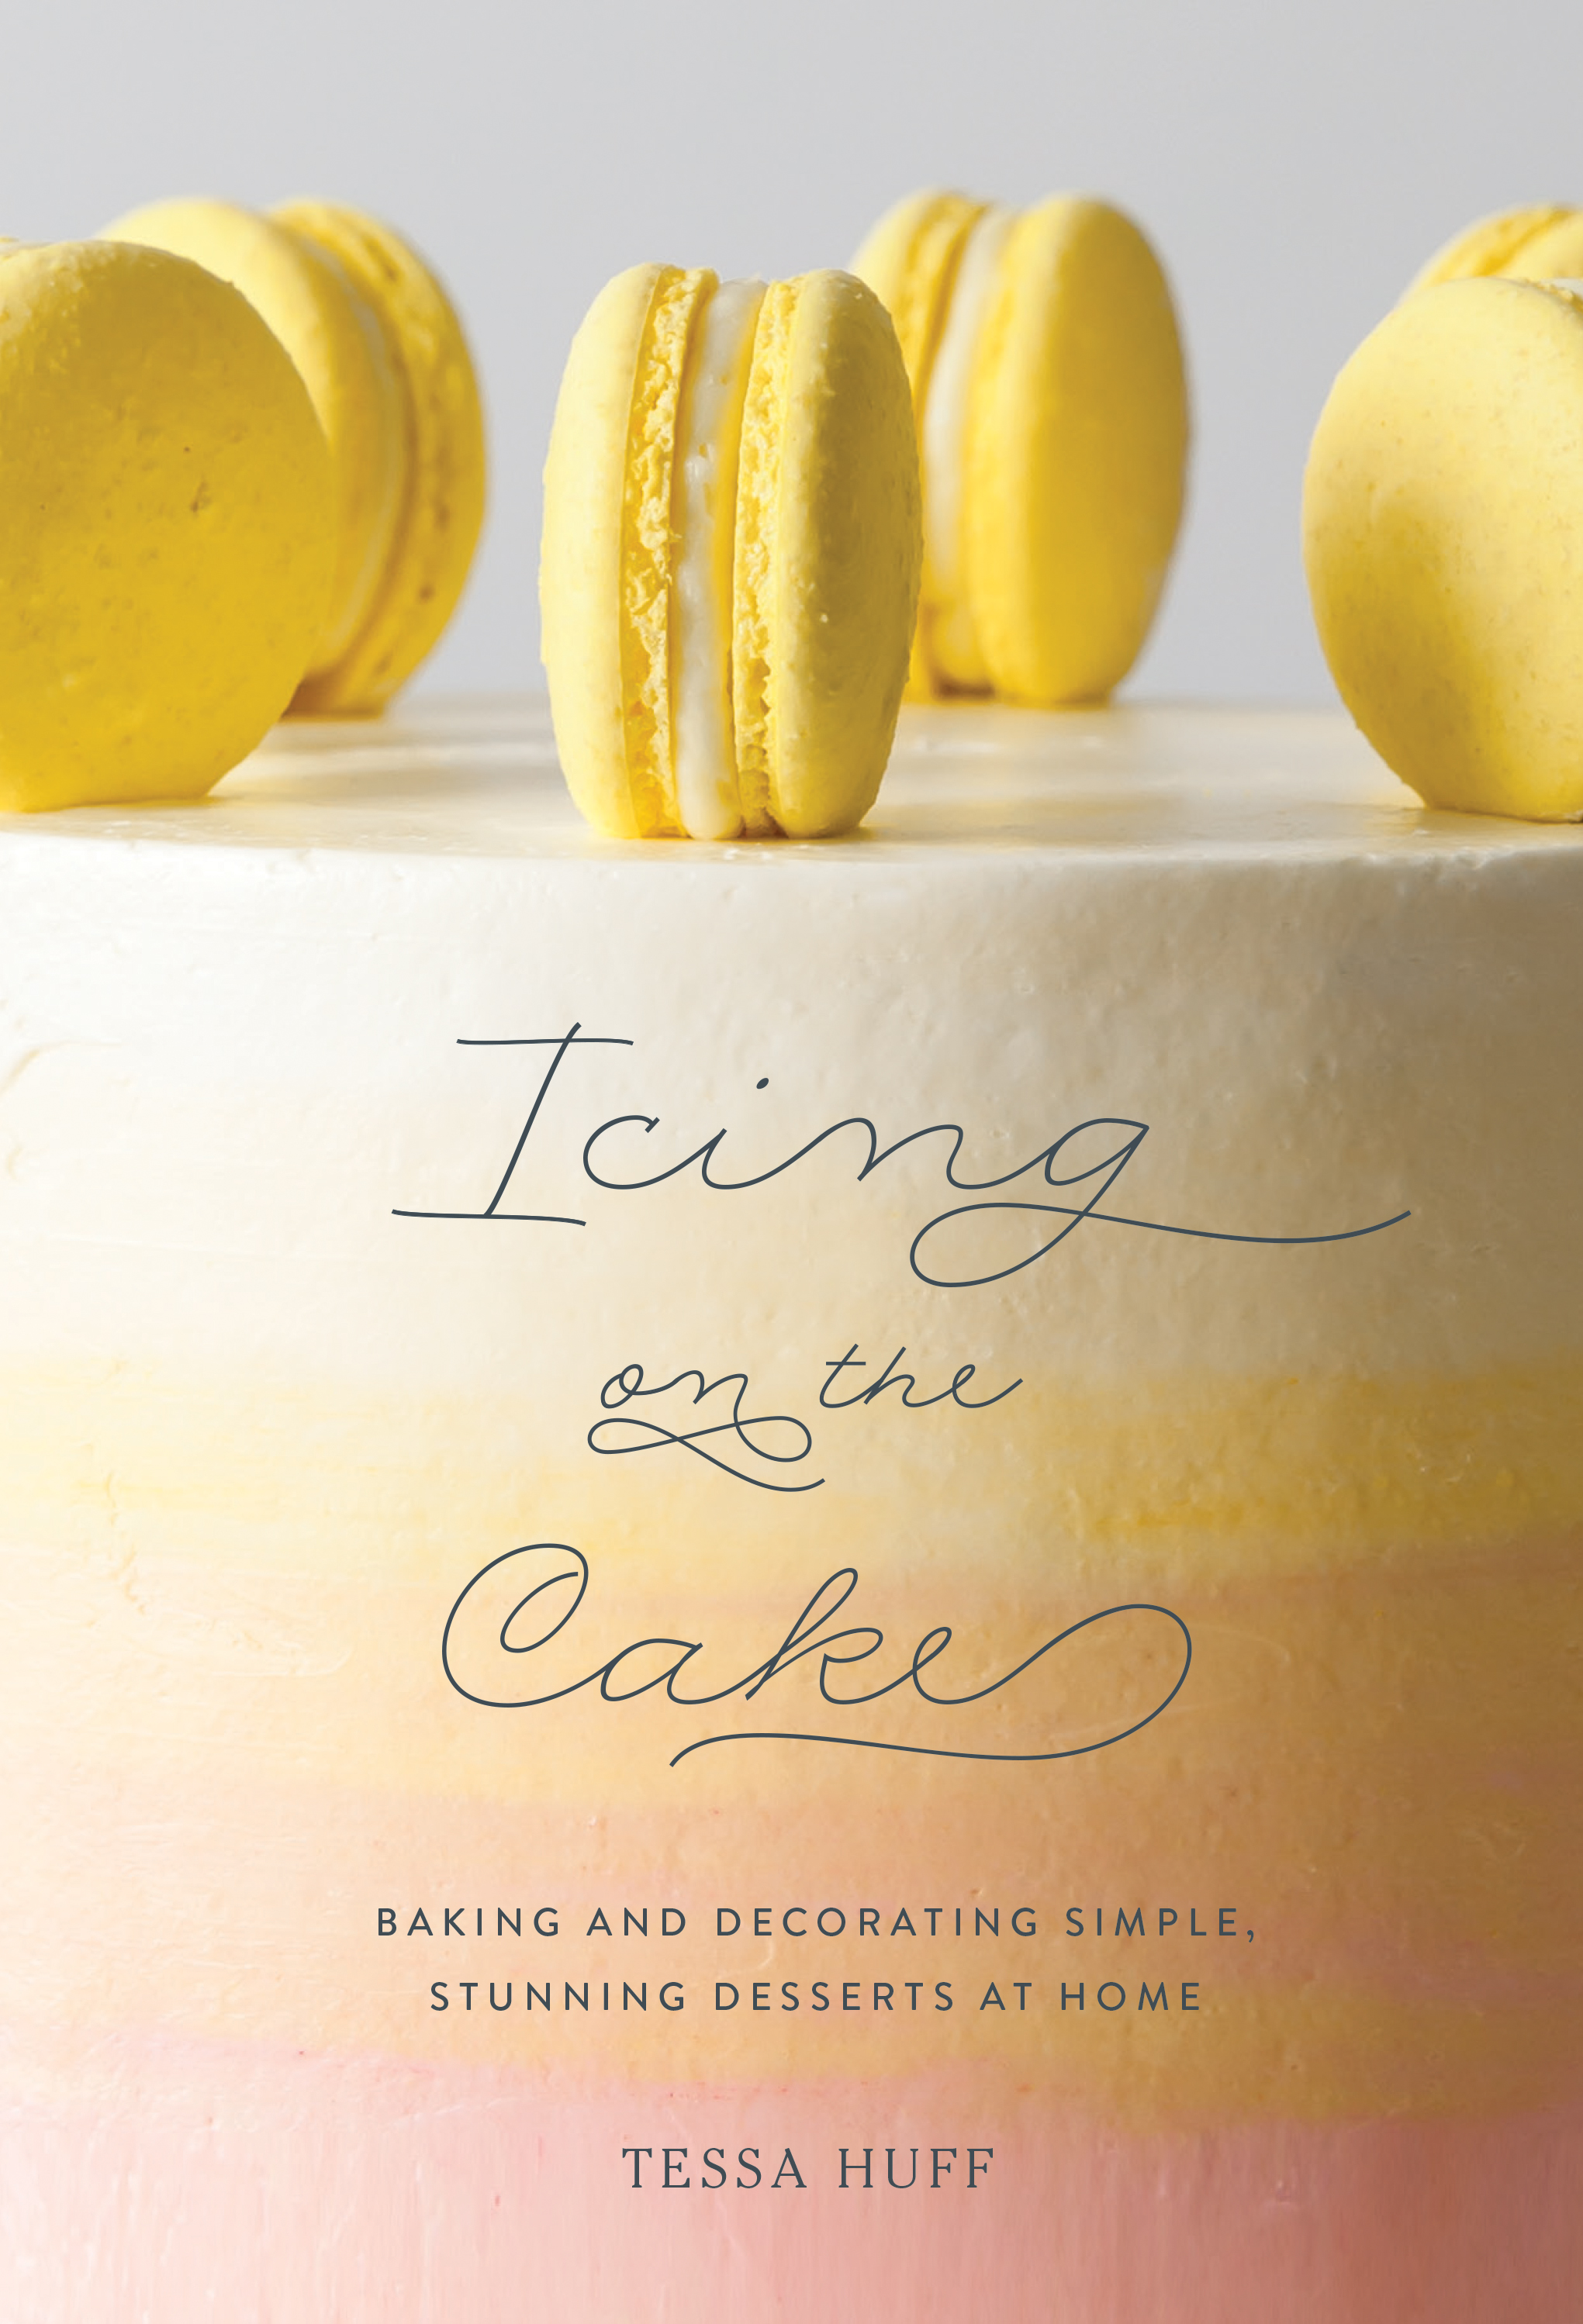 Icing on the Cake Book Tessa Huff